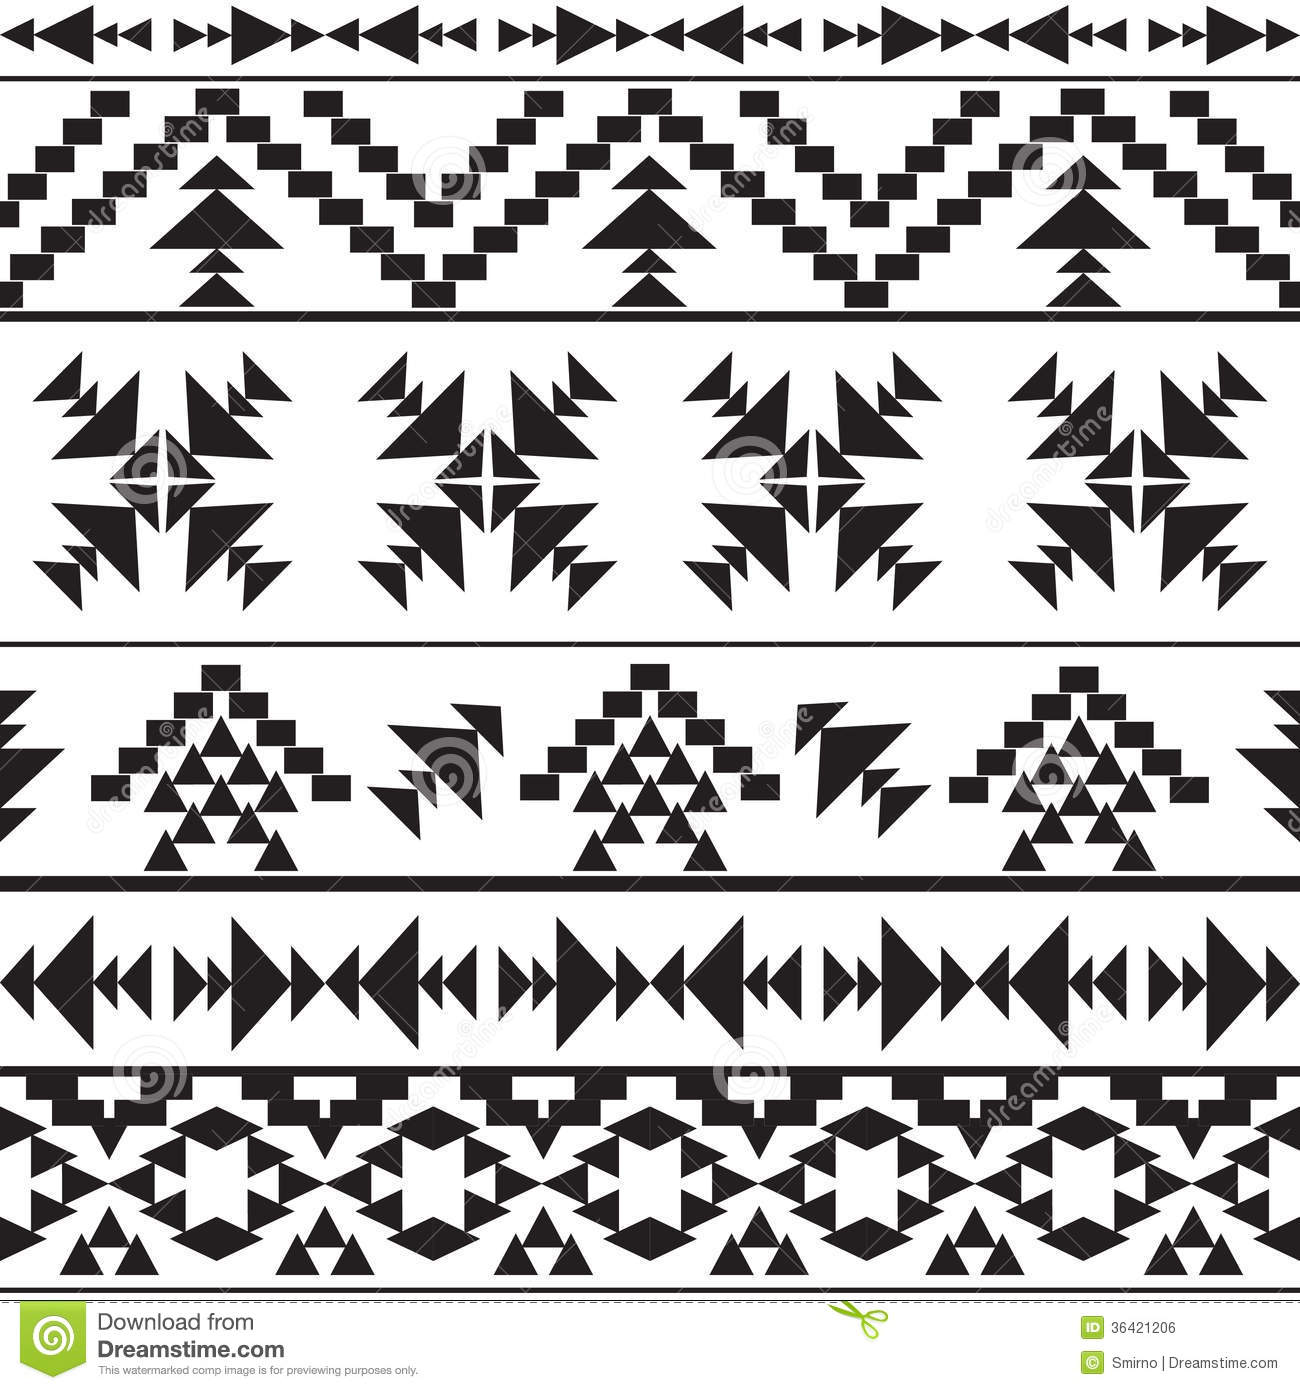 Liven up the walls of your home or office with Black White Aztec art from Zazzle. Check out our great posters, wall decals, photo prints, & wood wall art. Ikat Aztec Pattern - Fuchsia Pink, Black and White Large Clock. $ 15% Off with code SHOPPINGZAZZ. Aztec Essence Pattern Black on White Canvas Print. $